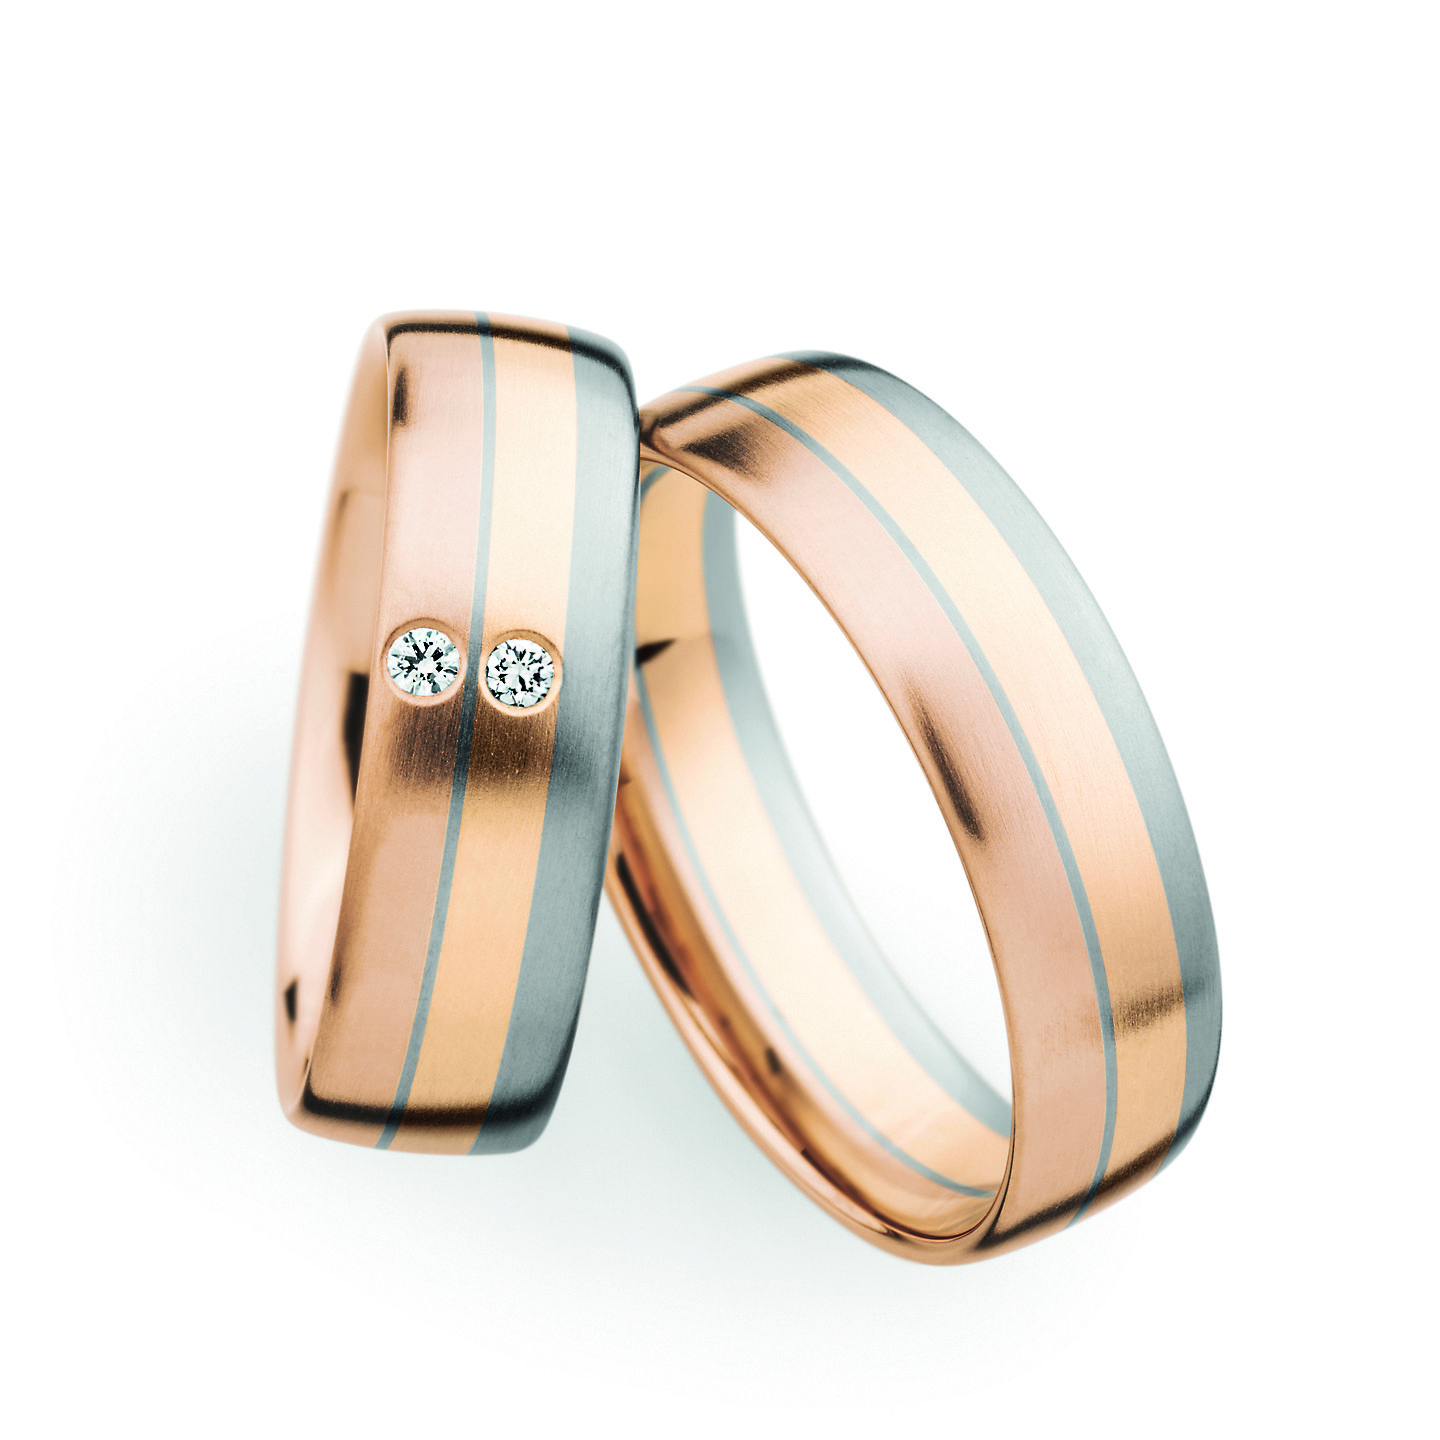 Christian bauer wedding bands christian bauer pinterest for Christian bauer wedding rings